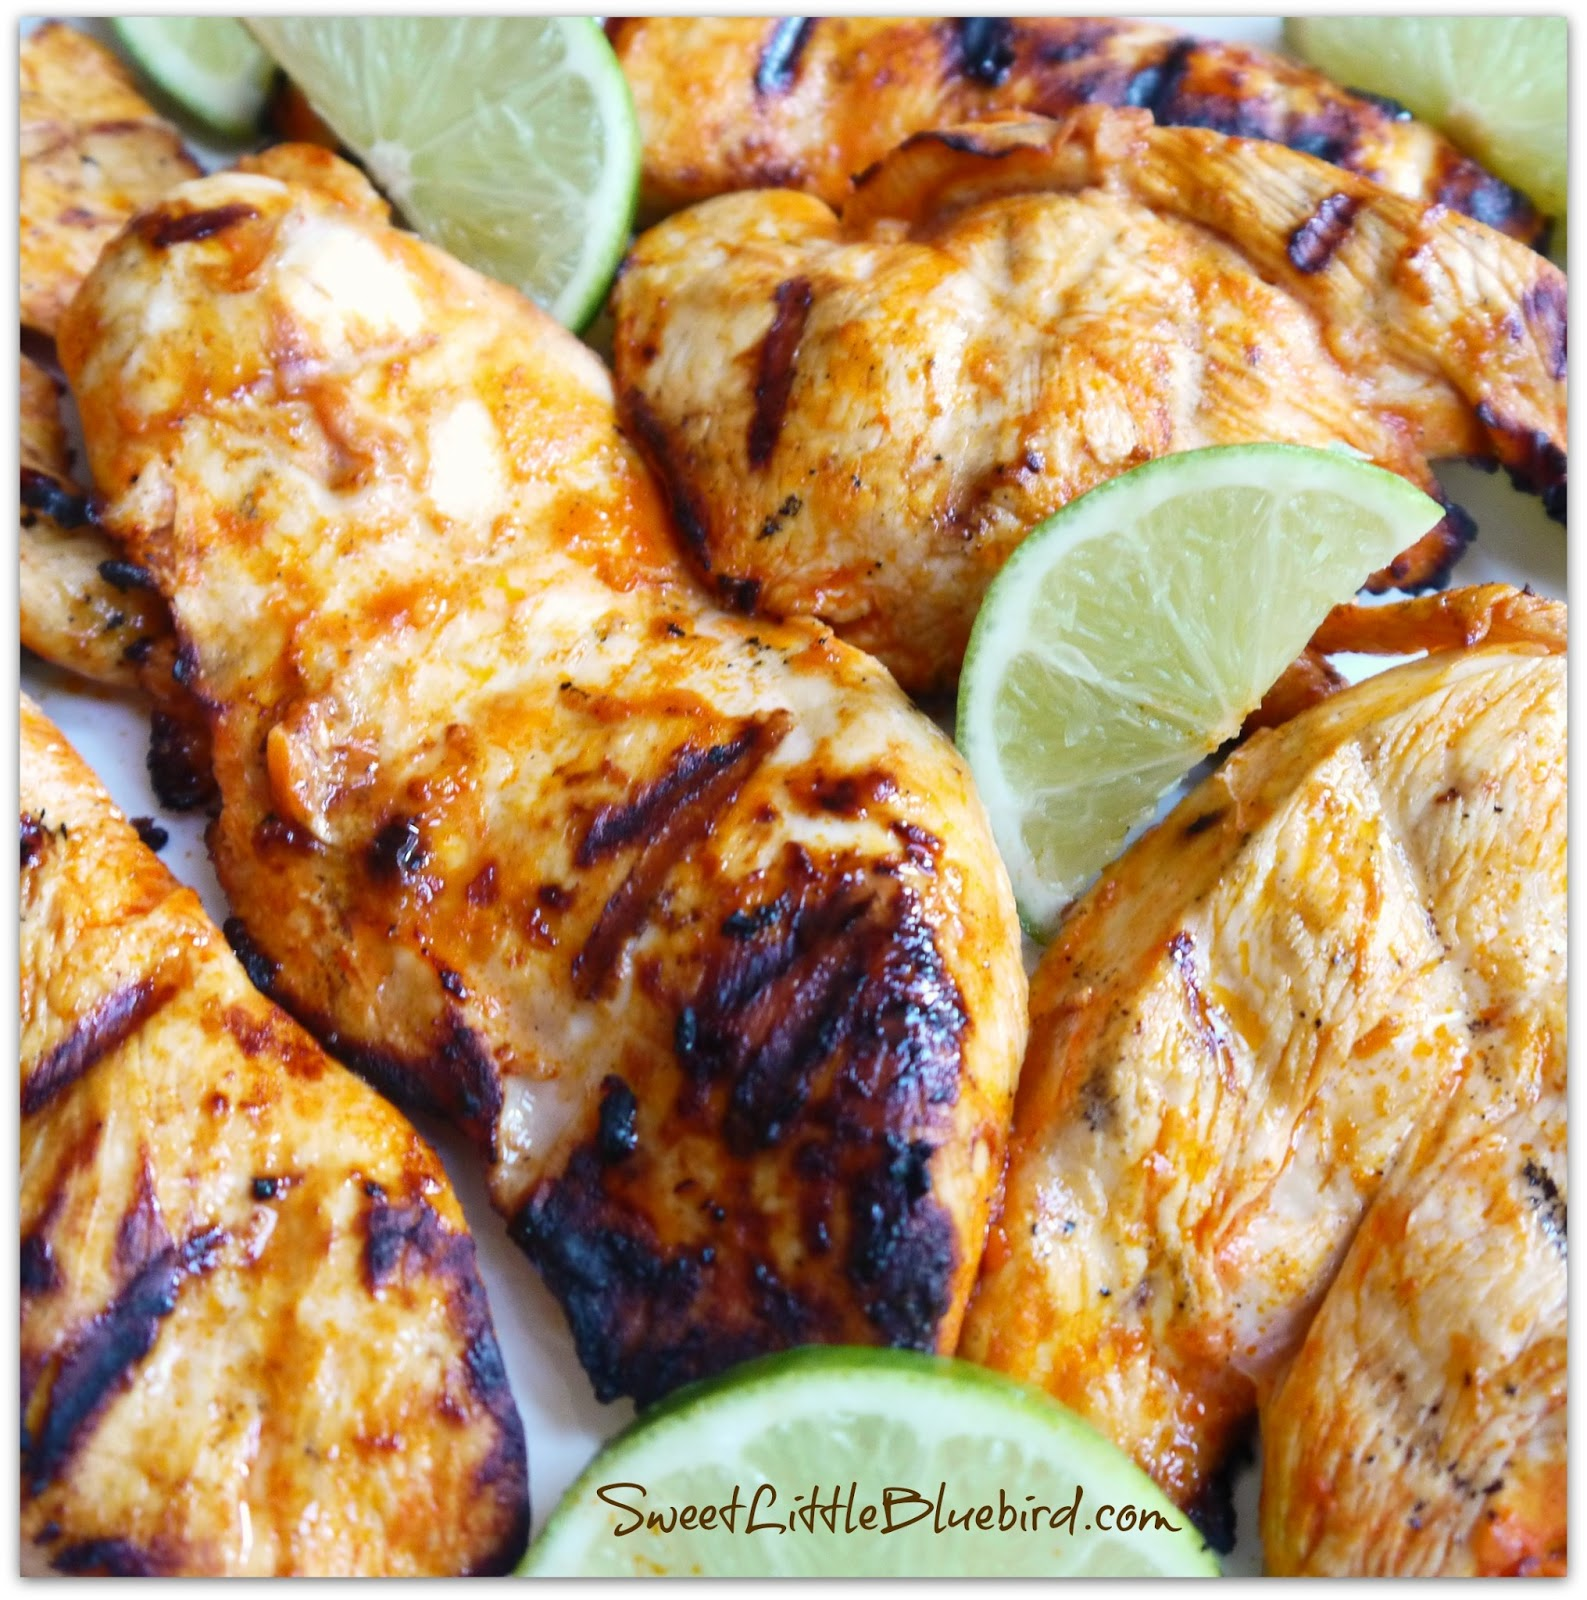 Chicken recipes using lime juice